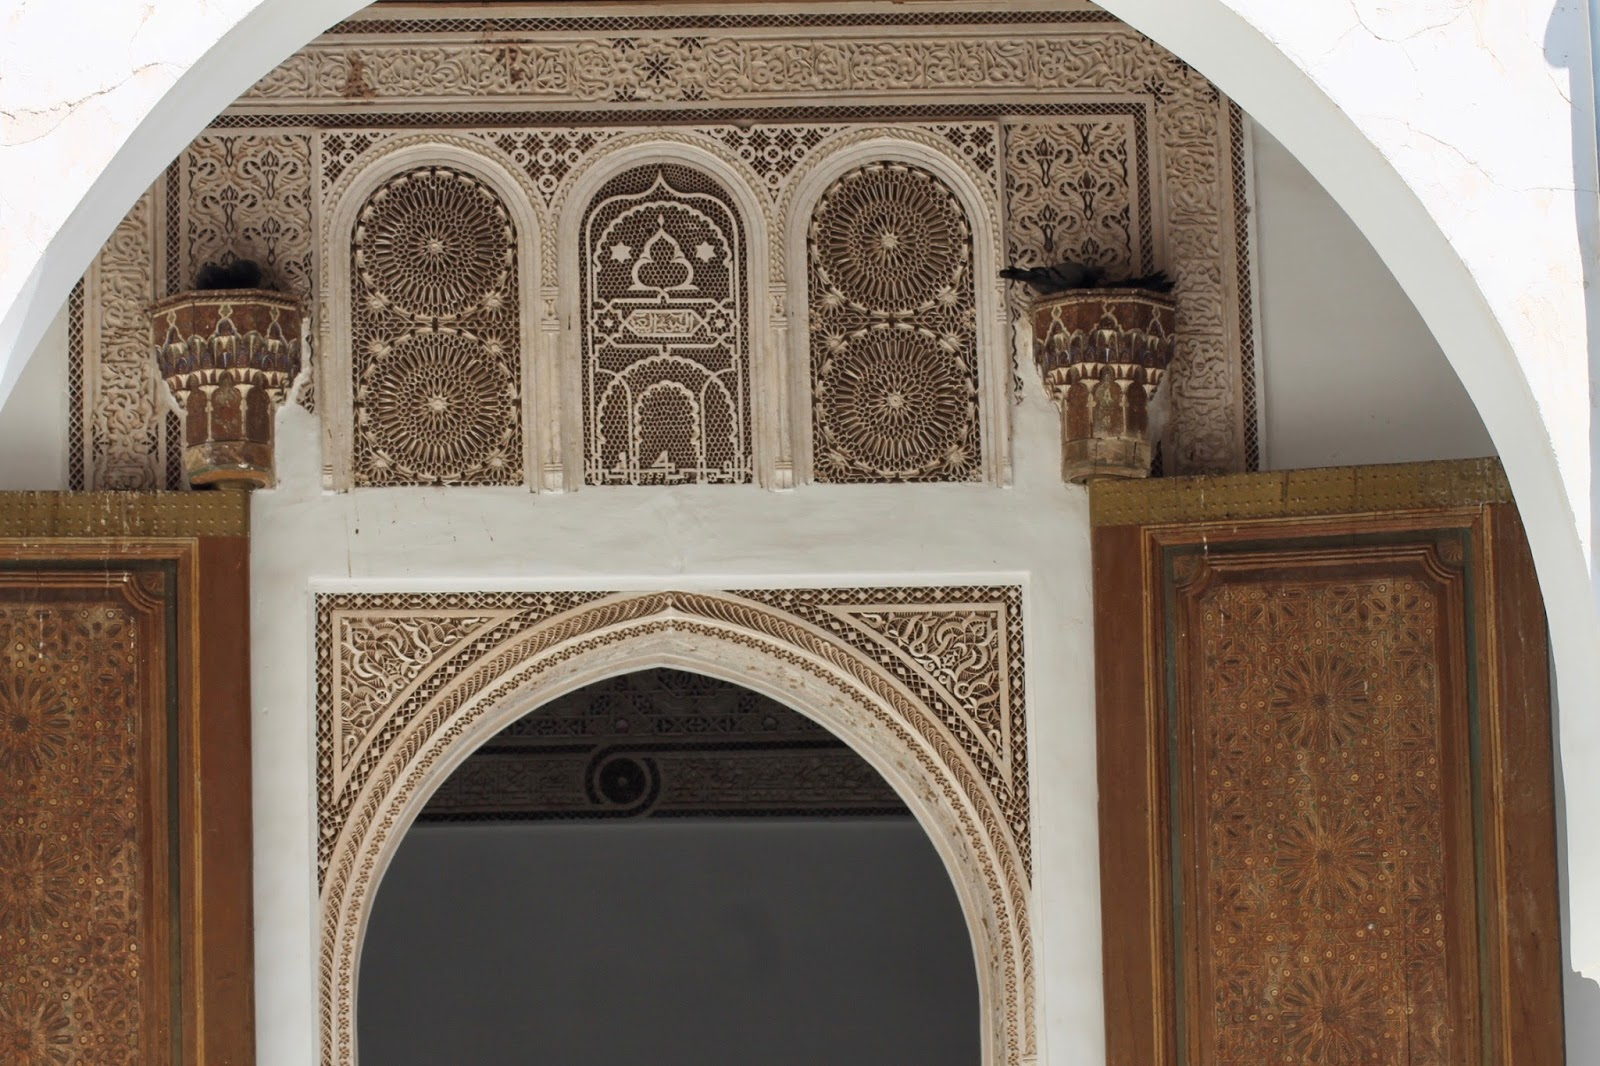 Detailed Architecture In Marrakech Morocco